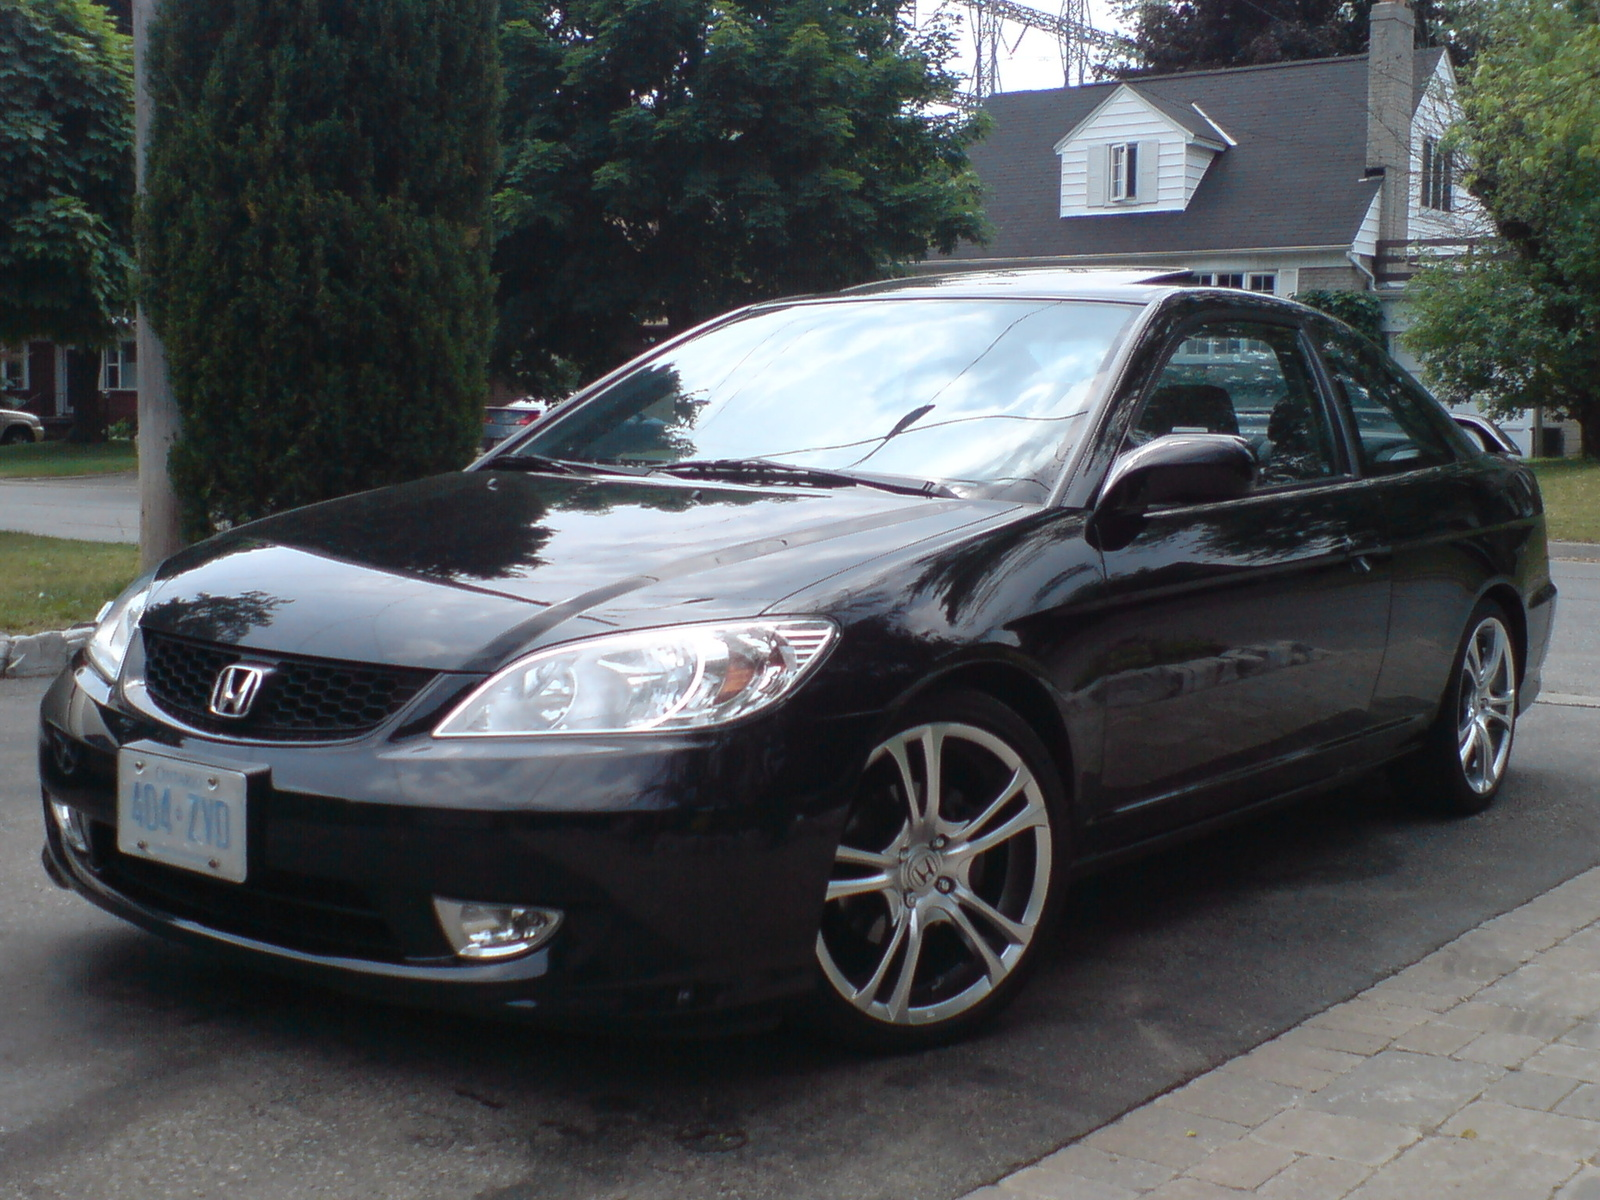 Picture of 2005 honda civic si exterior